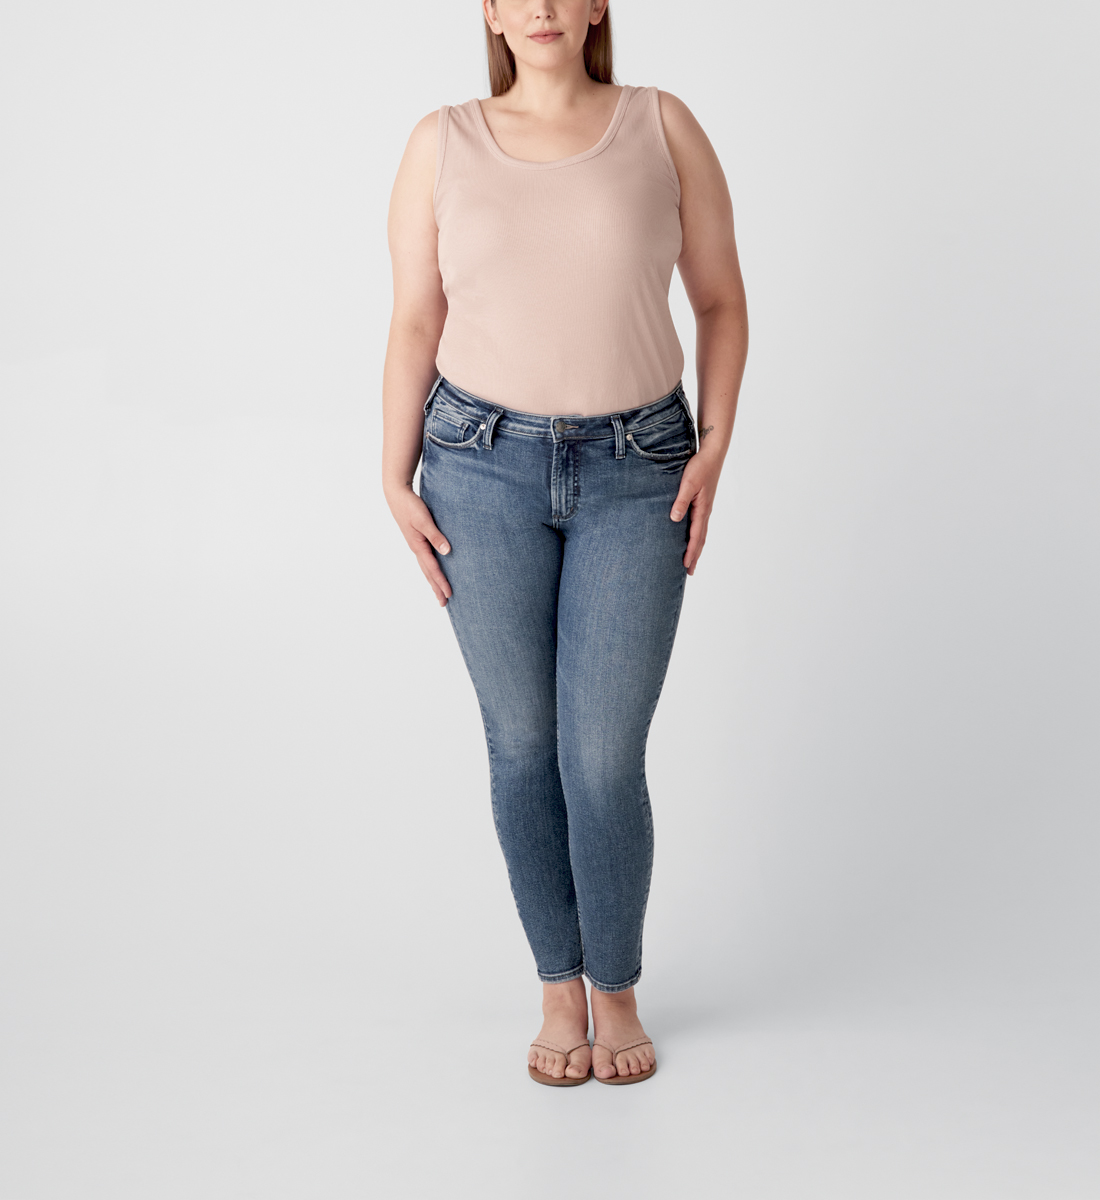 Silver Jeans Most Wanted Mid Rise Skinny Jeans Plus Size